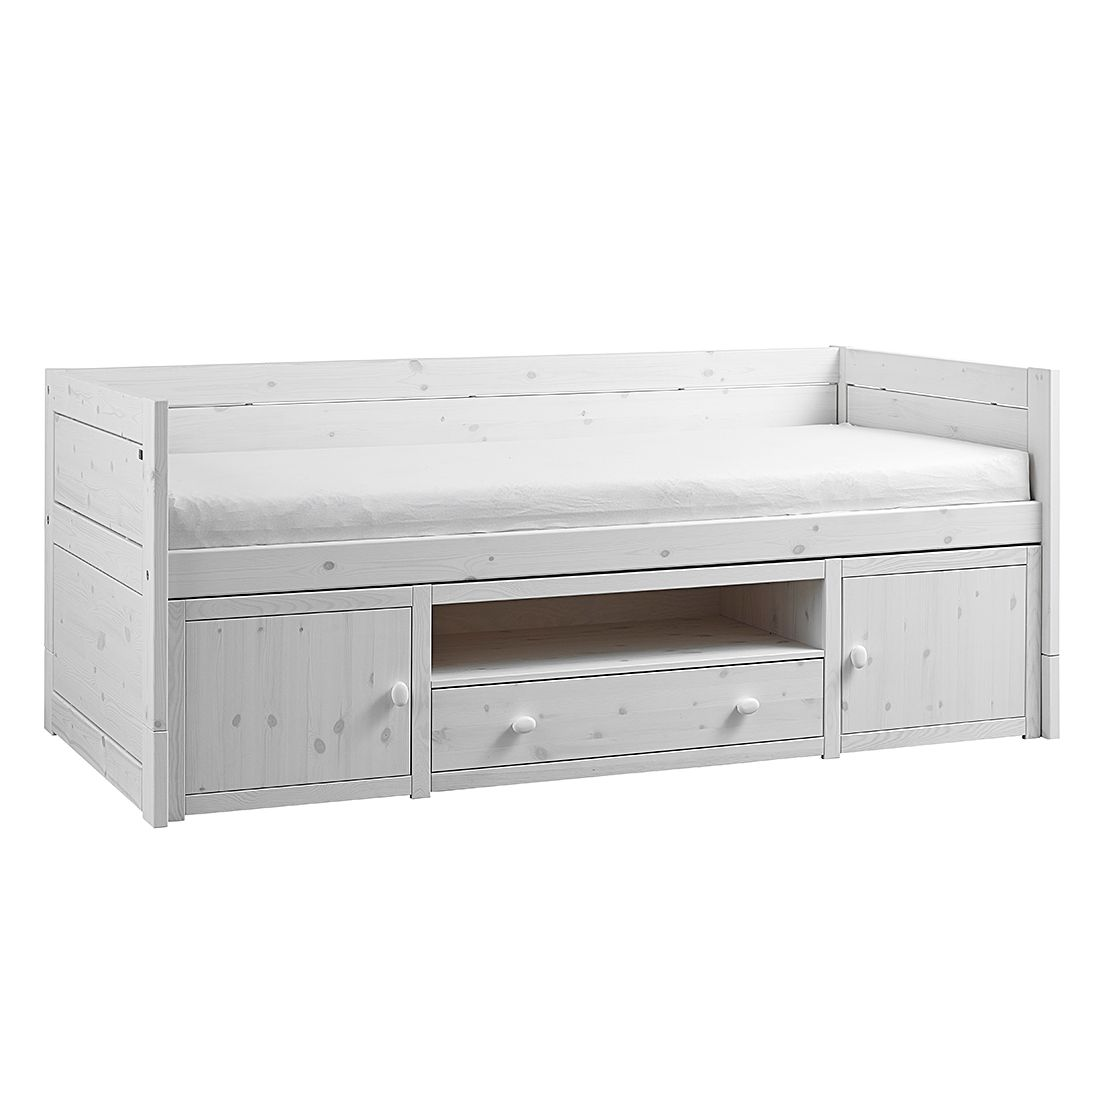 Kojenbett II Lifetime Original - Kiefer massiv - Whitewash - Mit Rollrost, Lifetime Kidsrooms